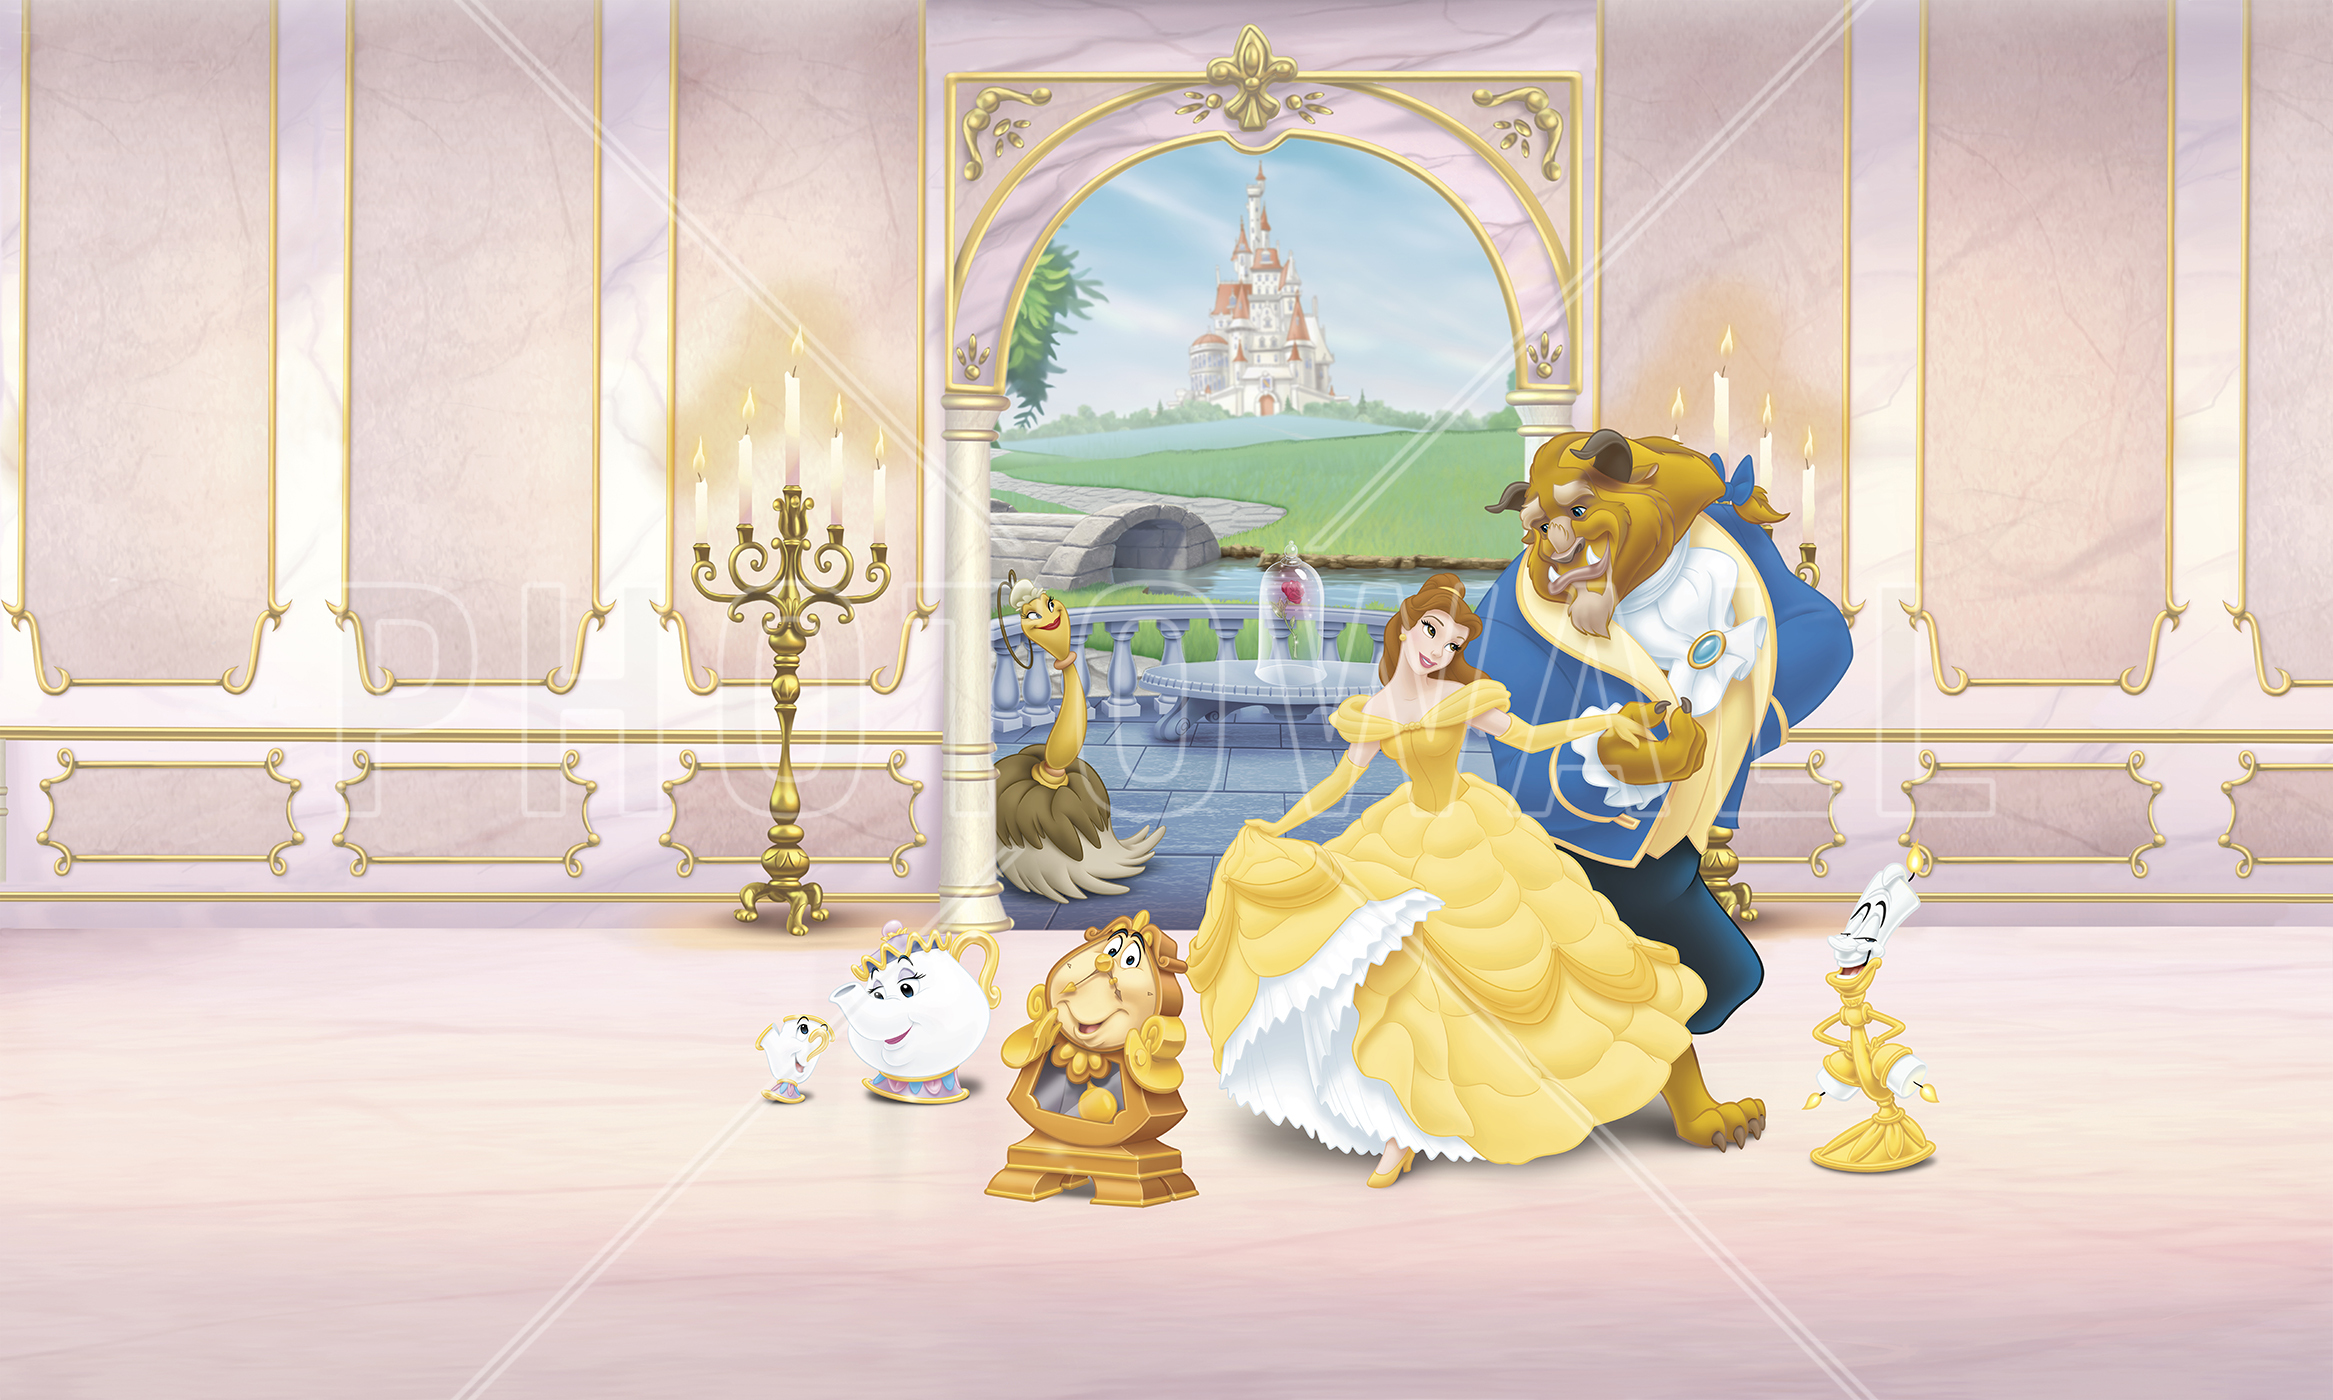 High Quality Wall Mural   Princess   Beauty And The Beast Part 11